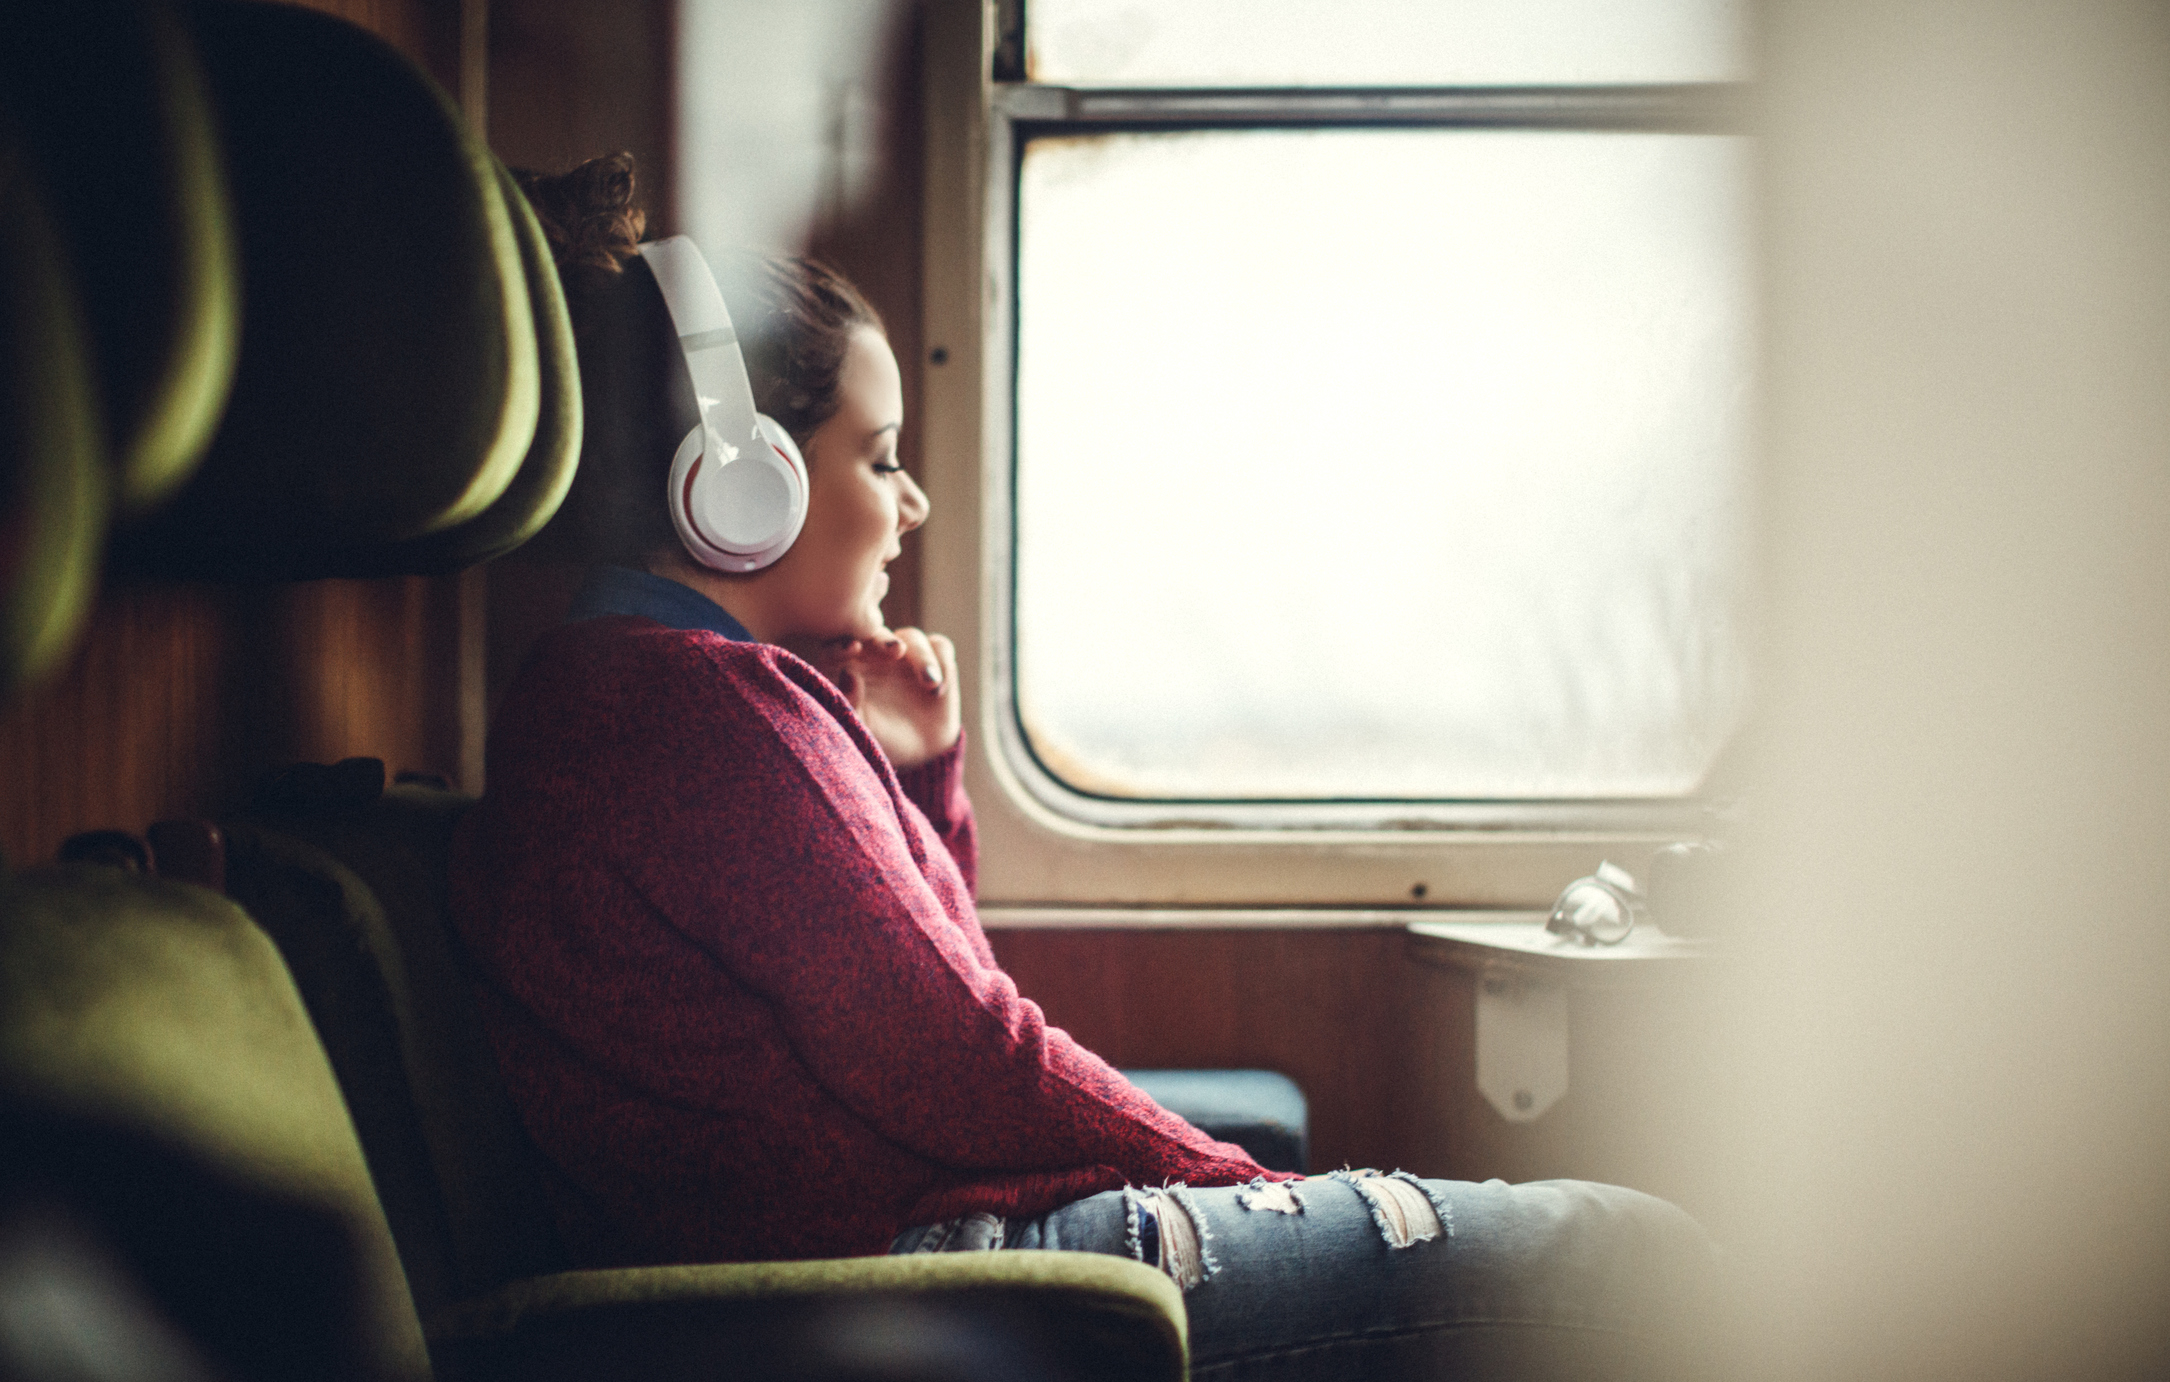 Smiling woman listening to music on smart phone in subway